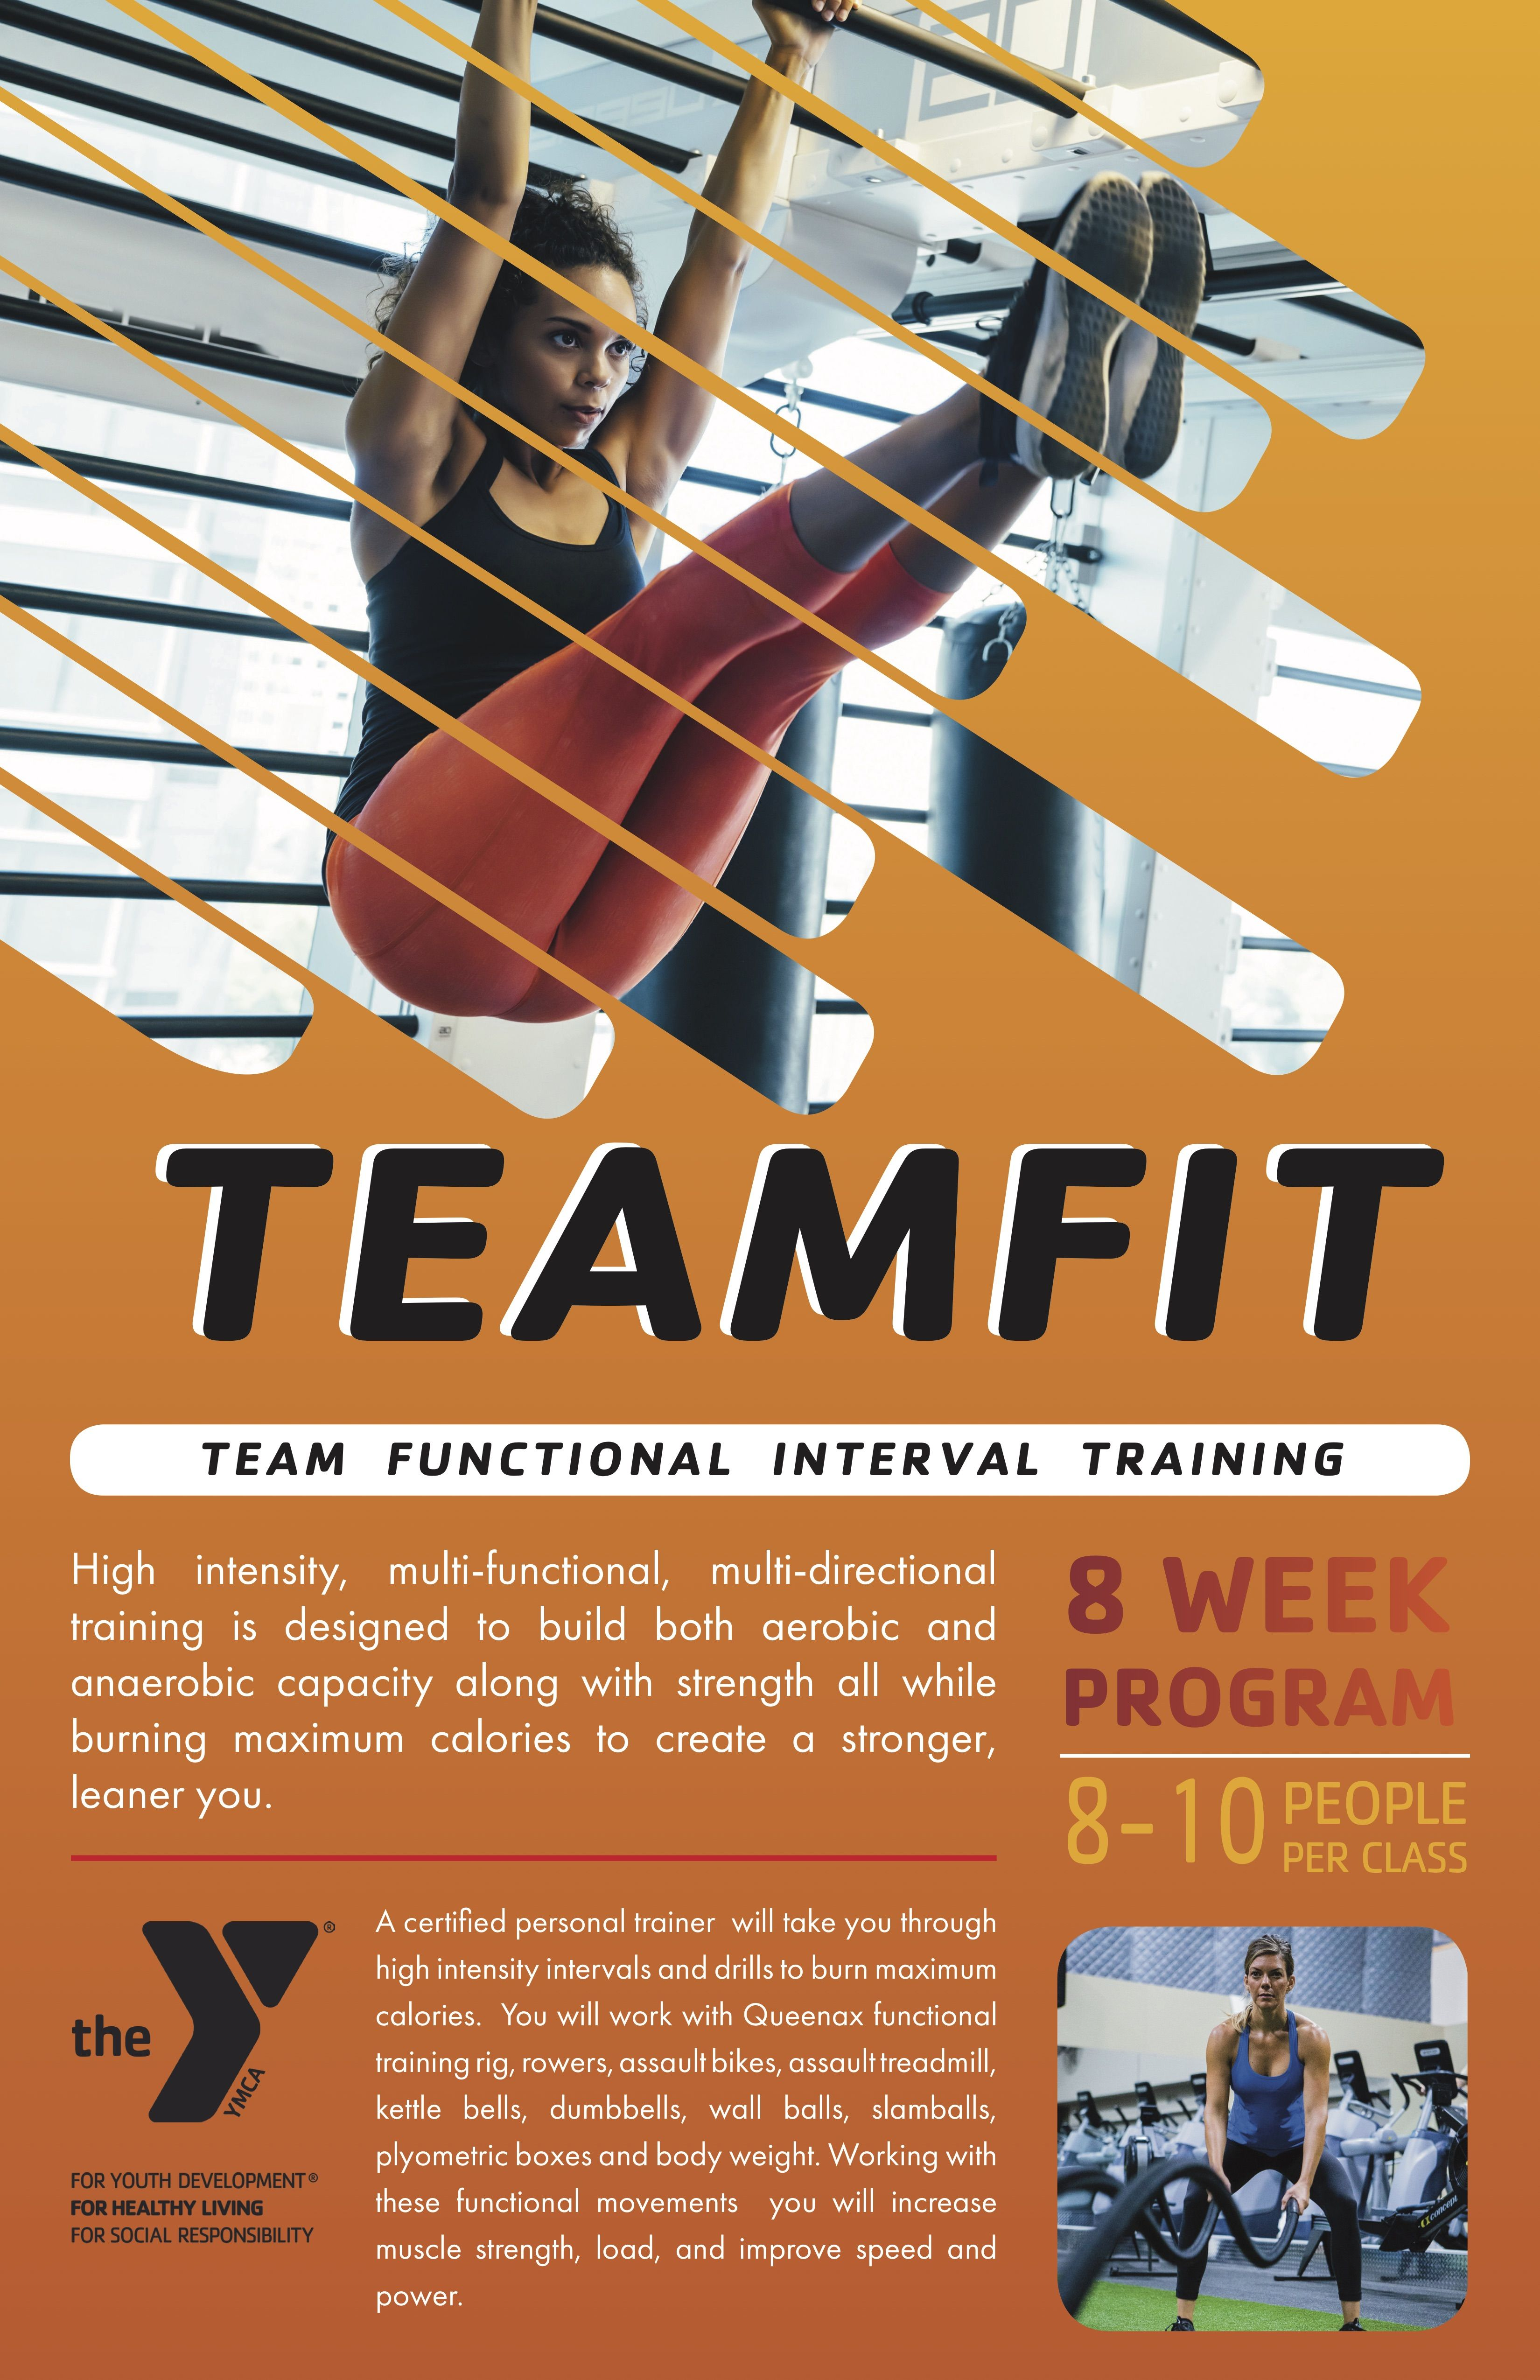 Pin By Brittany Pursinger On Ymca Marketing Posters Training Design Marketing Poster Ymca